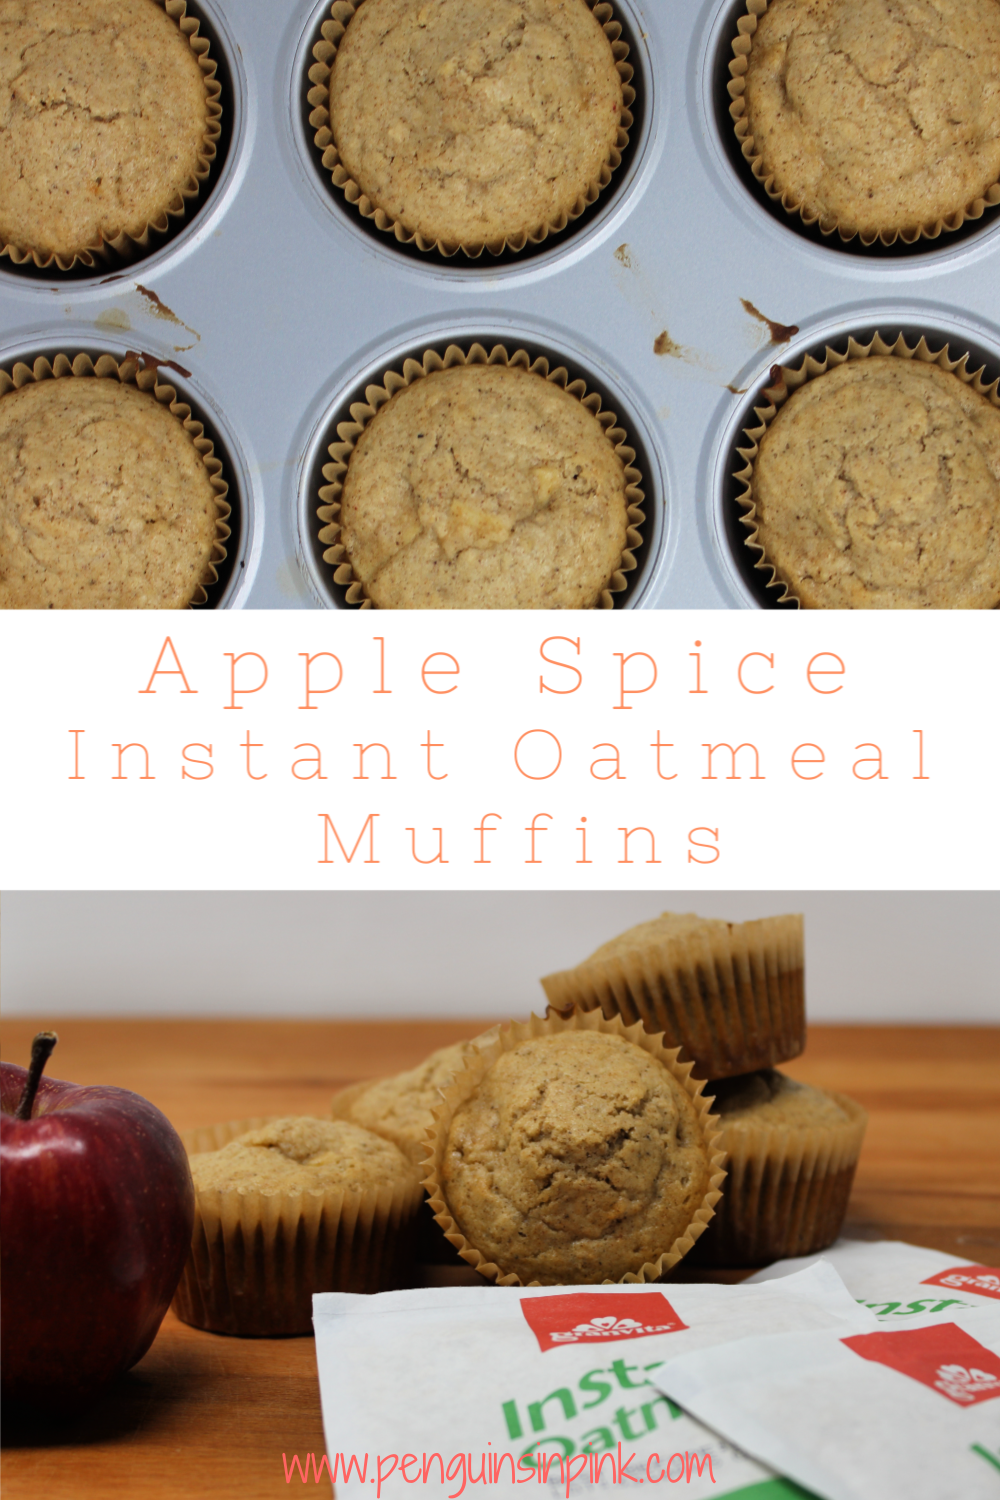 These freezer friendly Apple Spice Instant Oatmeal Muffins are bursting with apple pieces and instant apple cinnamon oatmeal making them a great kid-friendly food for breakfasts, snacks,or lunches!